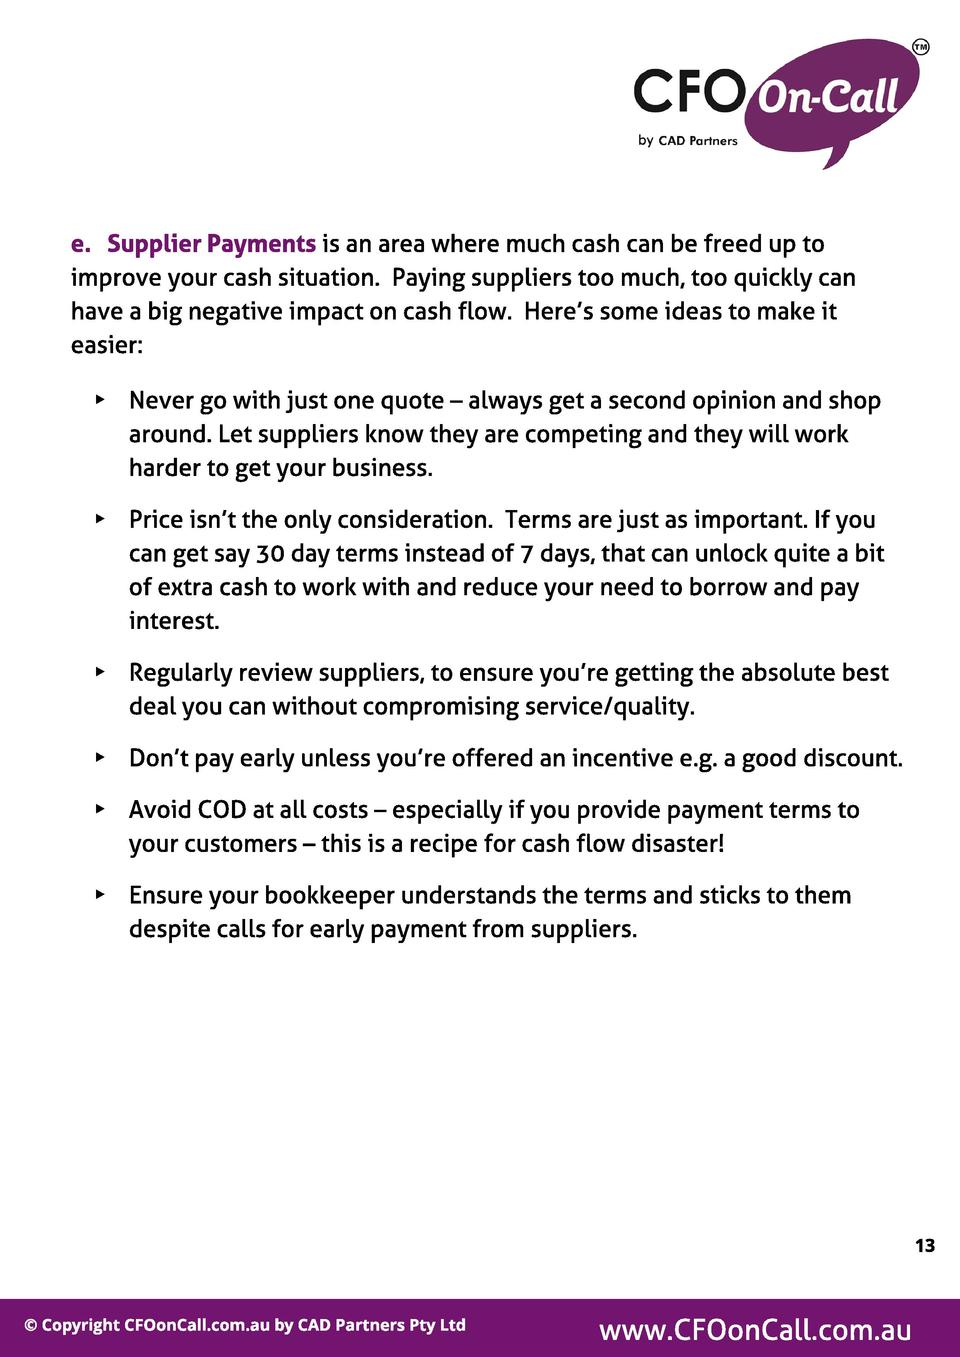 e. Suppl ier Payment s is an area where much cash can be freed up to improve your cash situation. Paying suppliers too muc...